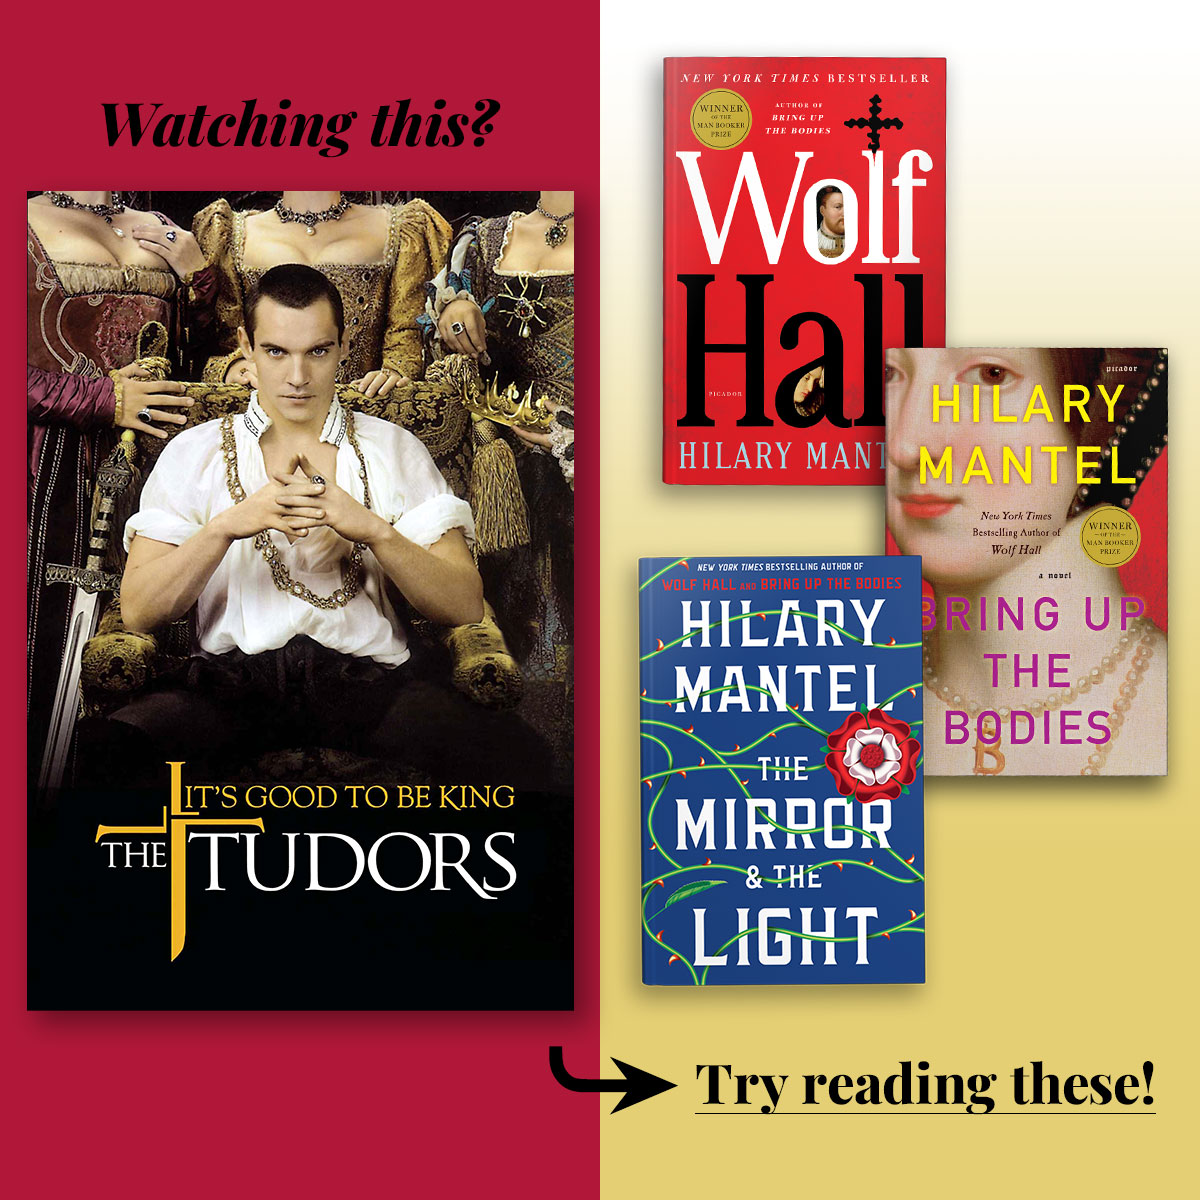 The Tudors streaming on Showtime • Try reading the Wolf Hall Trilogy by Hilary Mantel